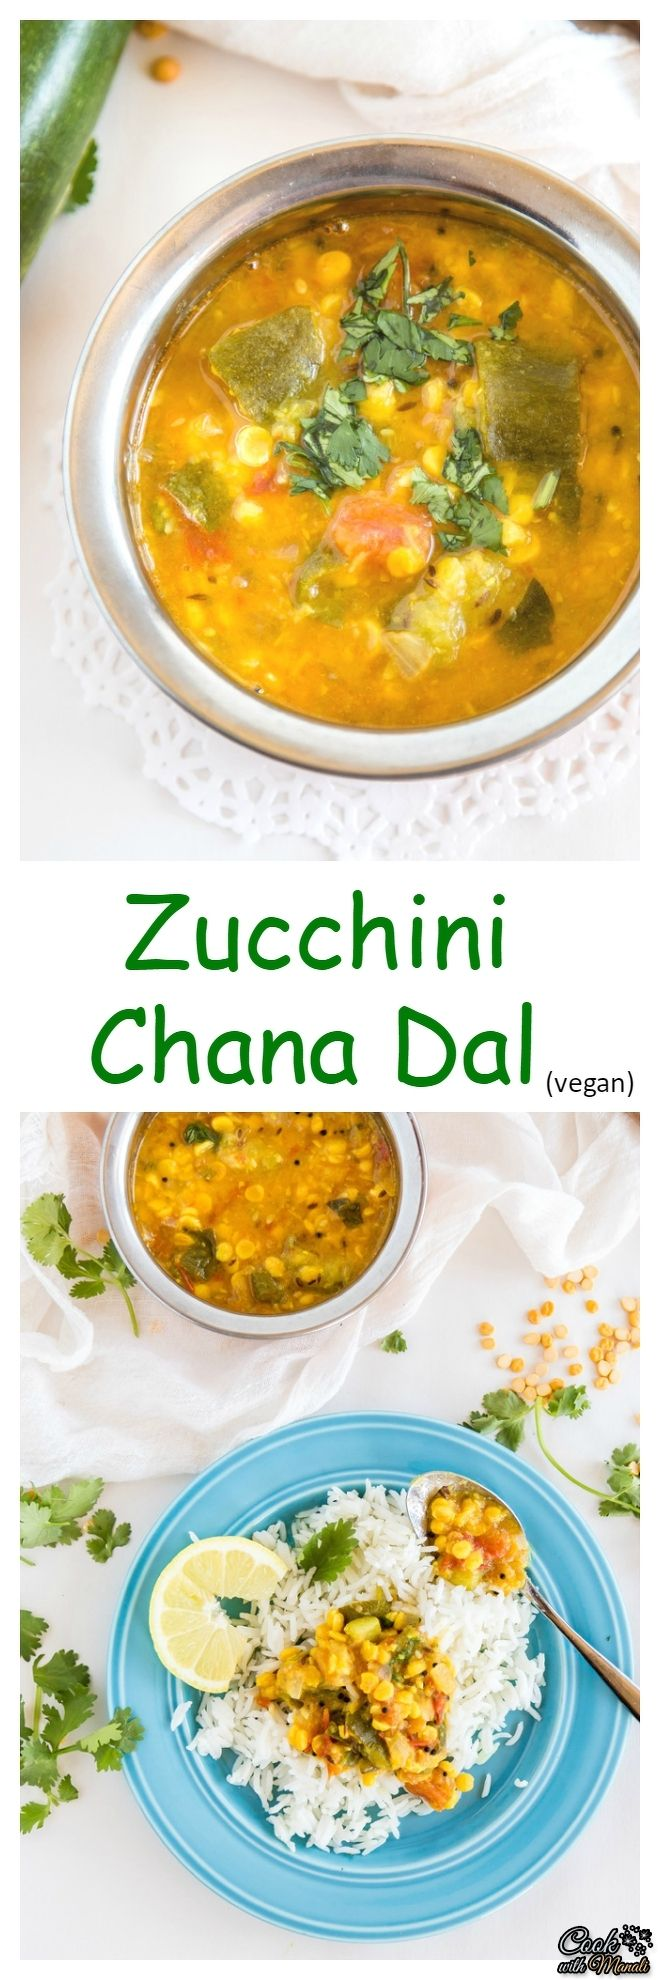 Zucchini Chana Dal is a healthy, flavorful and vegan dish which is great with plain rice or roti